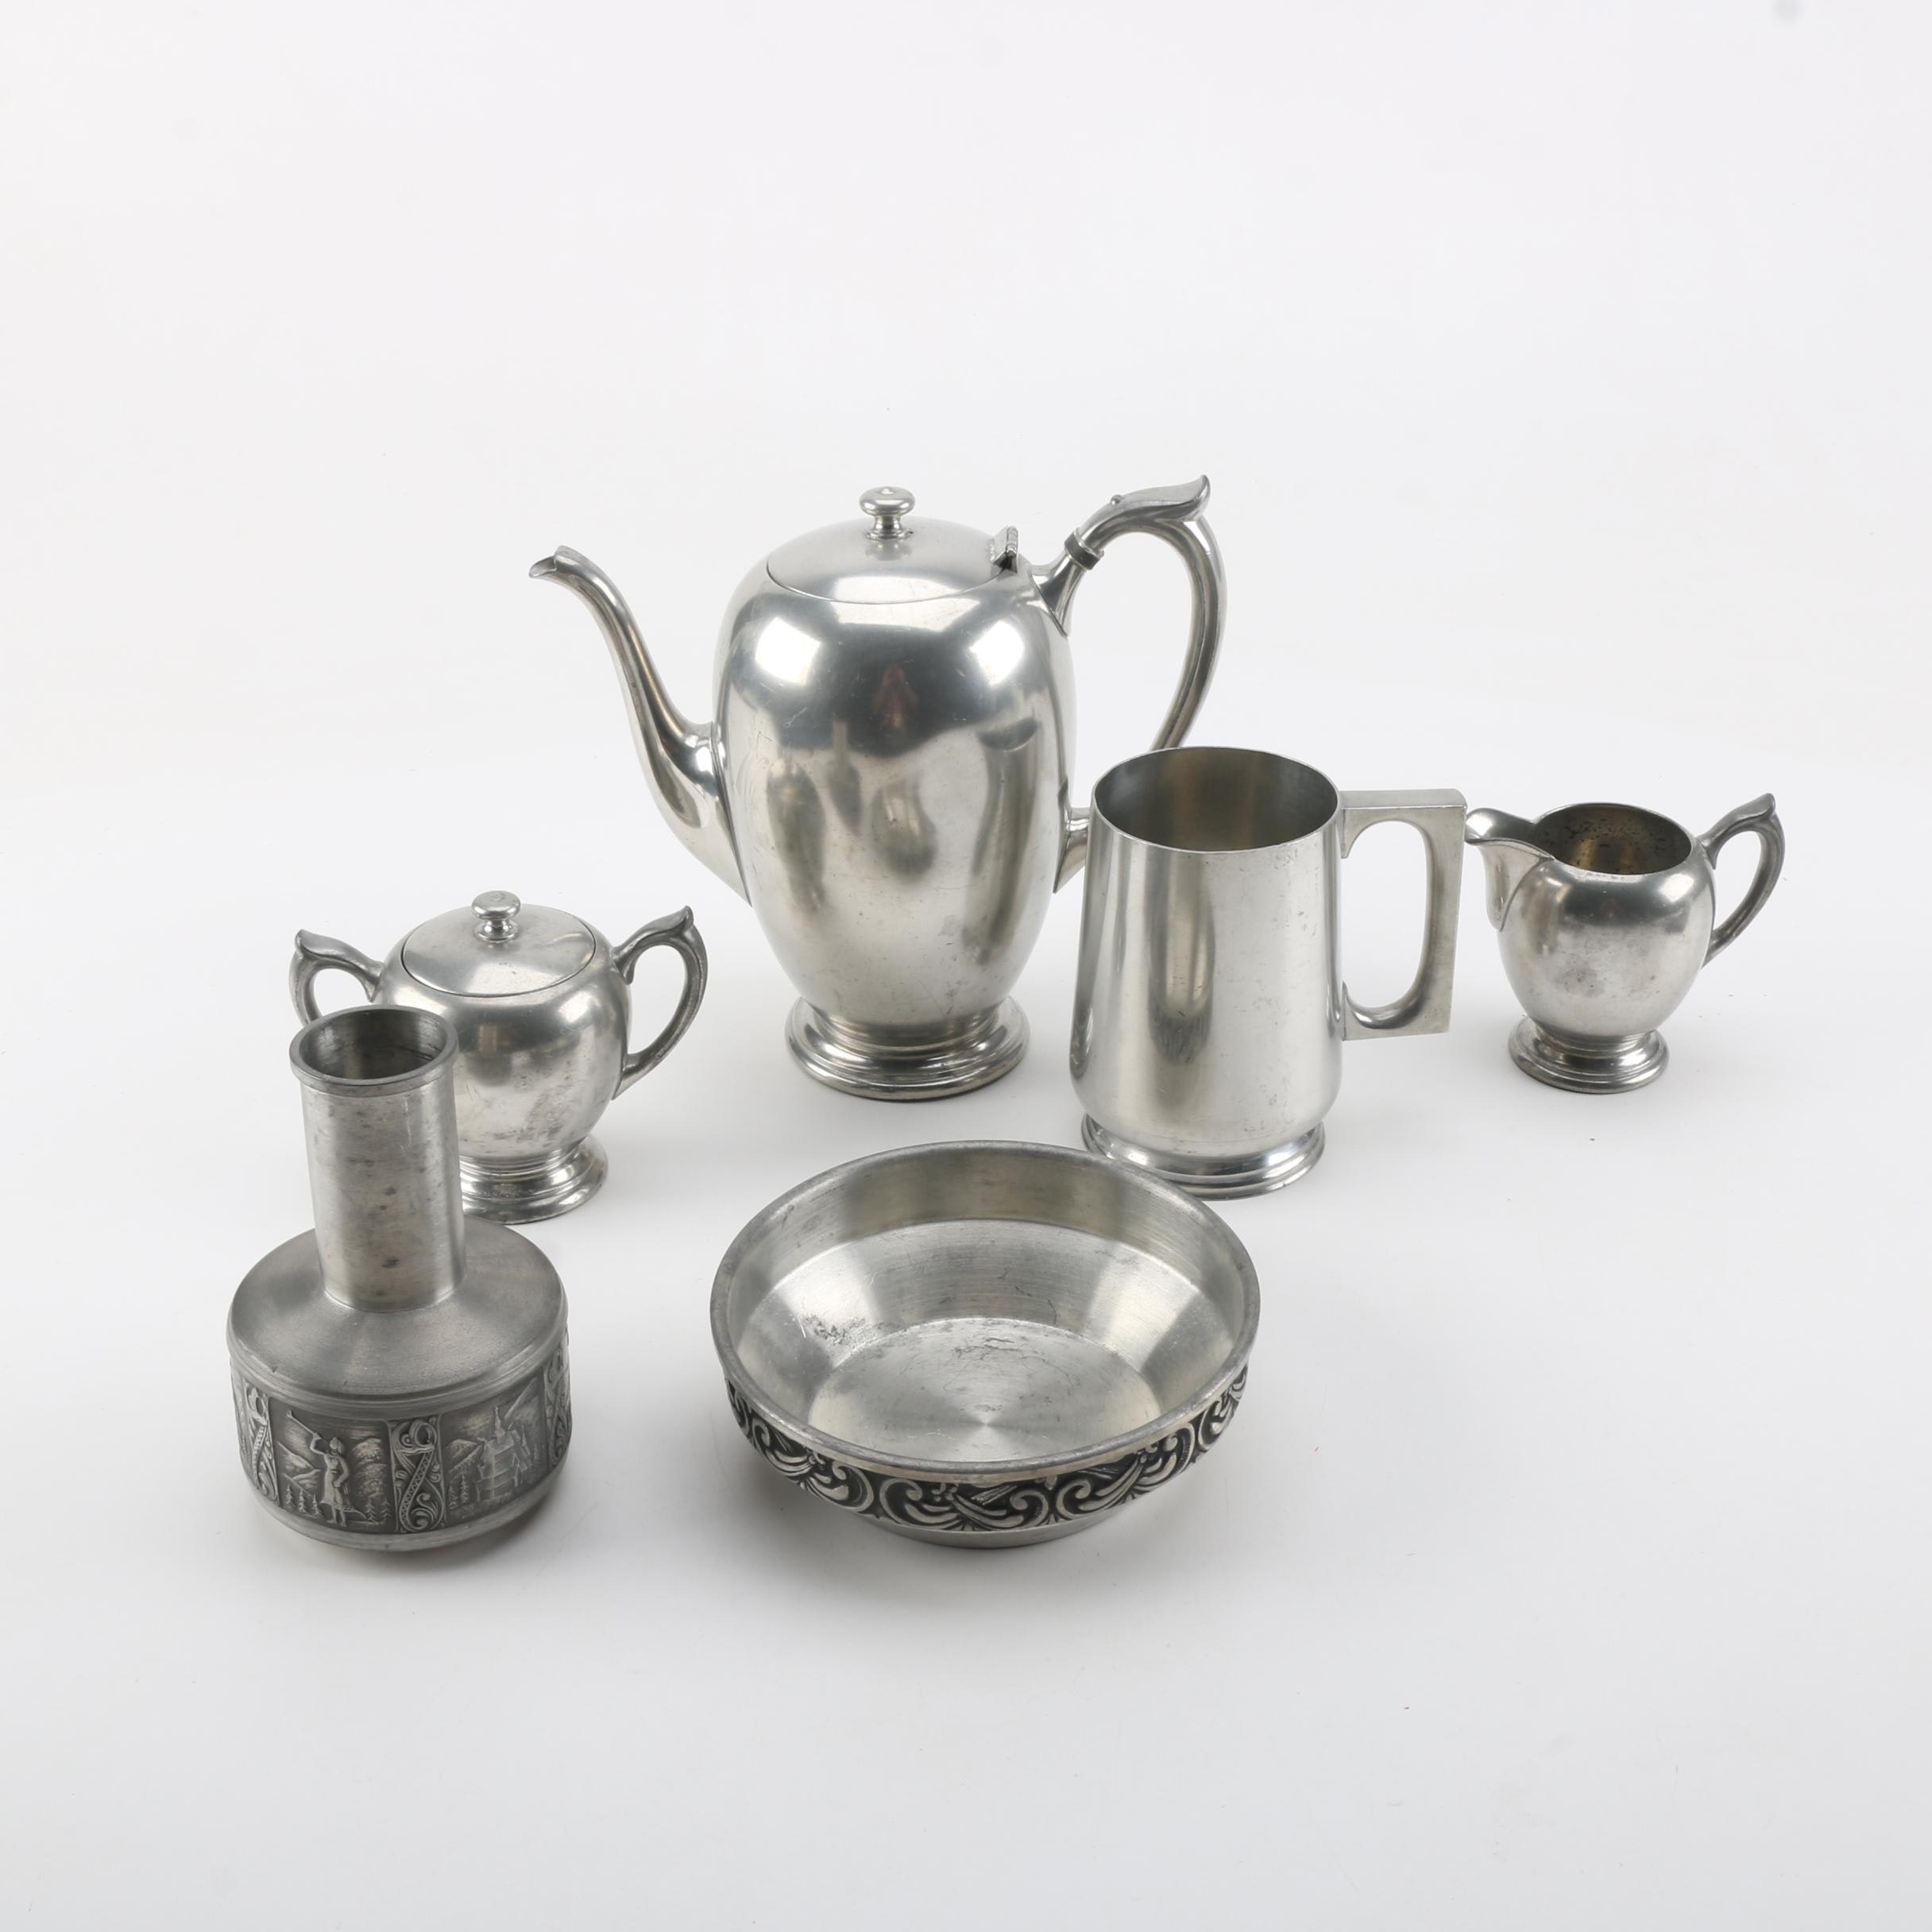 Pewter Serveware and Decor Featuring Poole and Kyrre Norsk Tinn